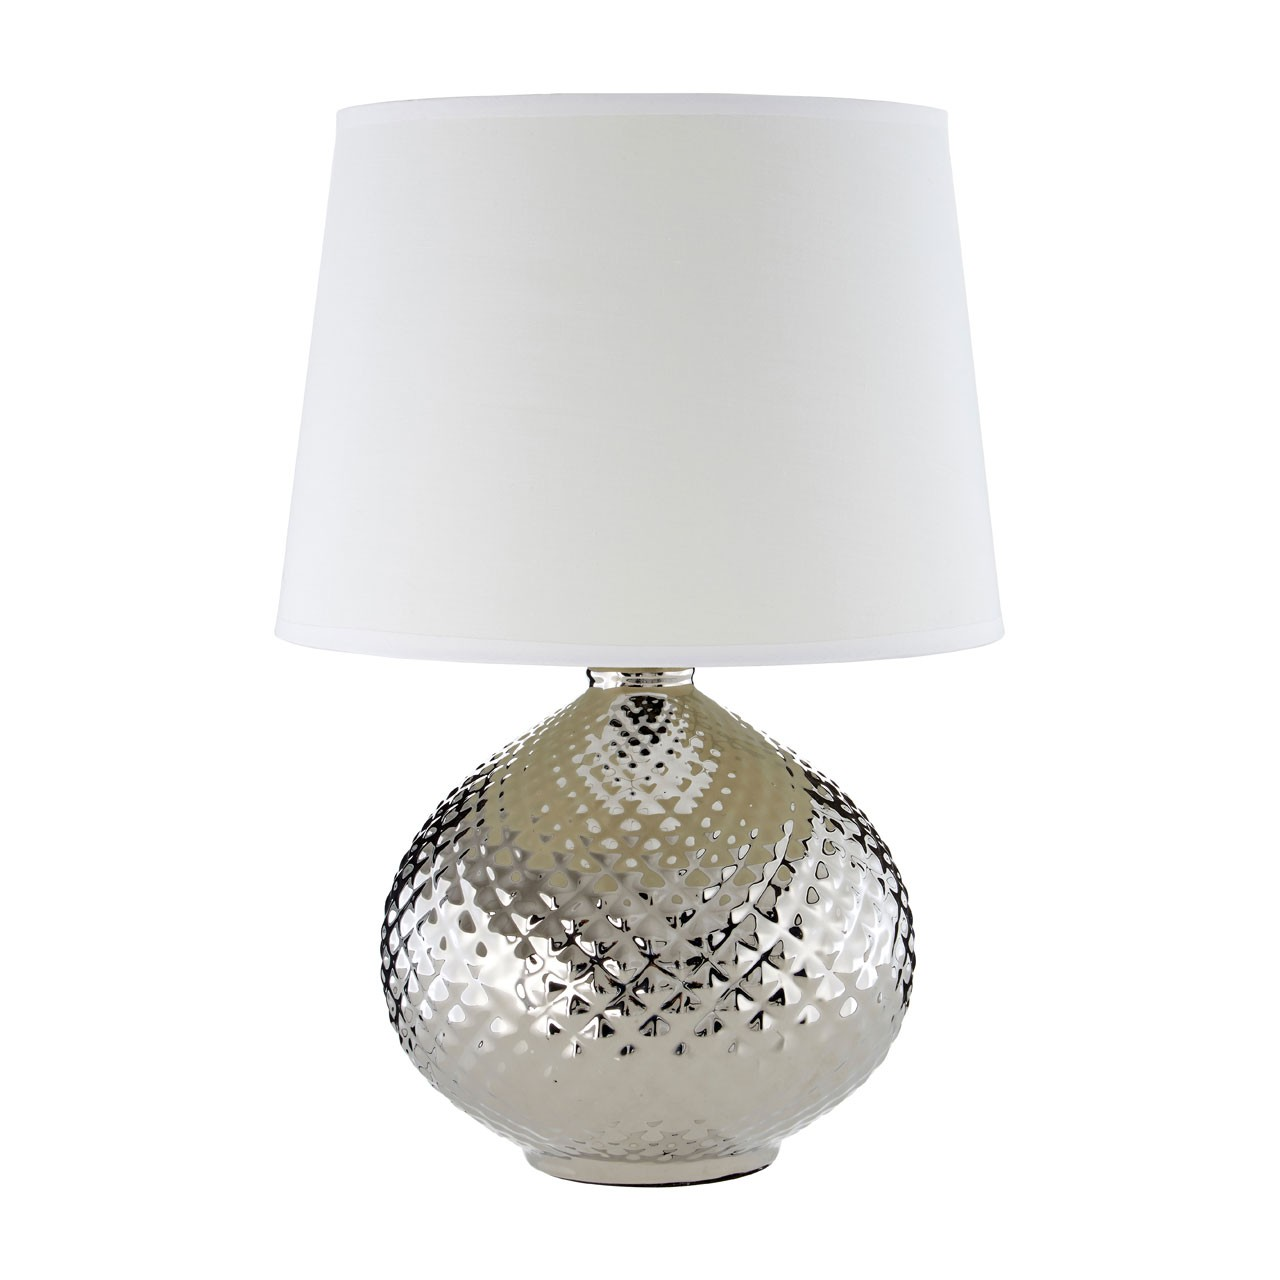 Prime Furnishing Hetty Table Lamp, Silver Ceramic - White Shade